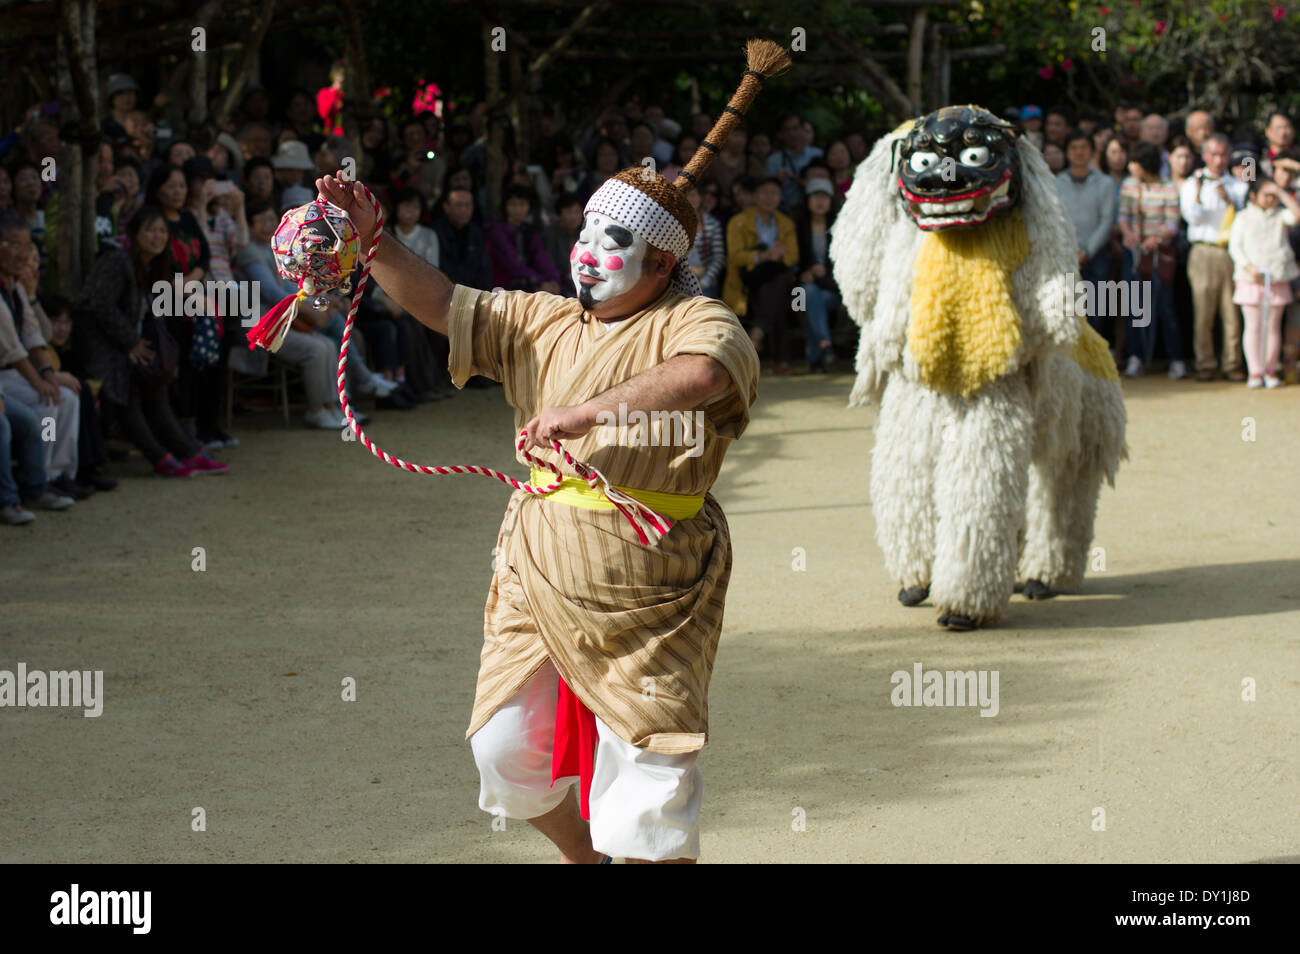 Chondara Clown and Shishimae lion dancers at Ryukyu Mura, Yomitan Village, Okinawa, Japan - Stock Image